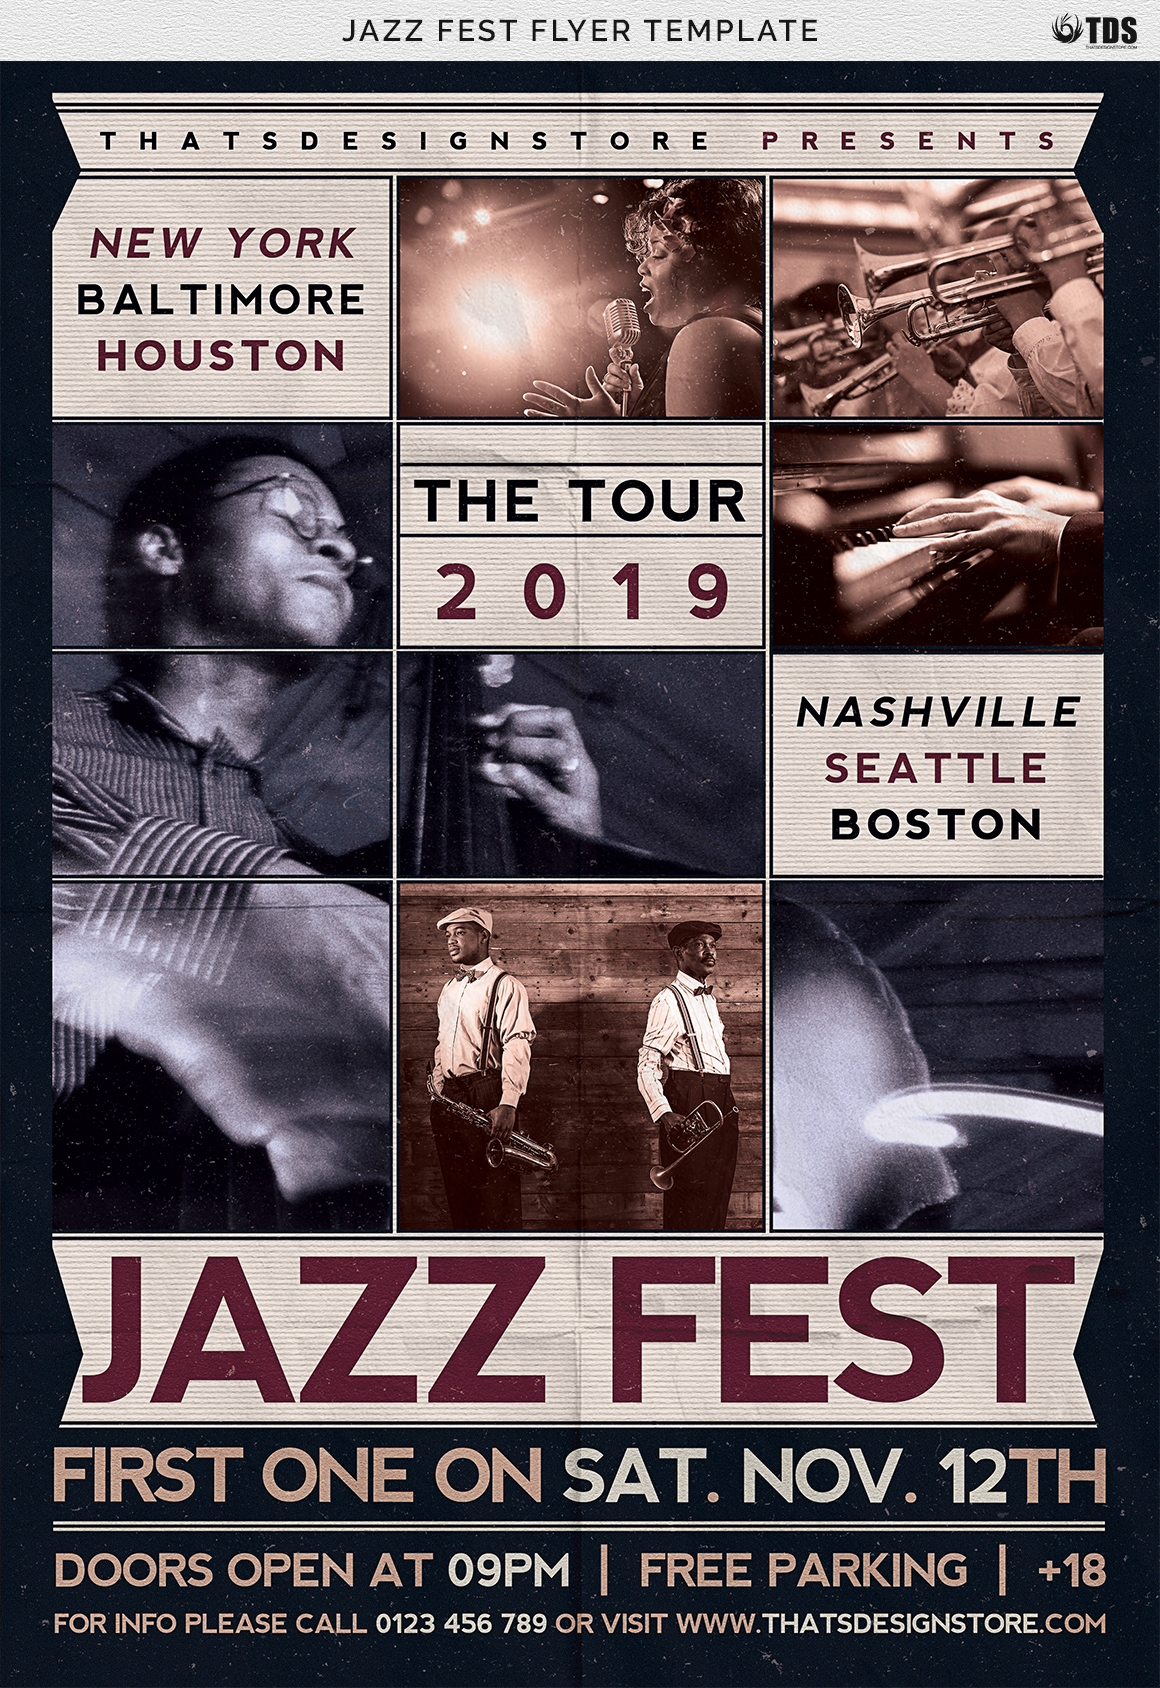 Jazz Fest Flyer Template example image 7